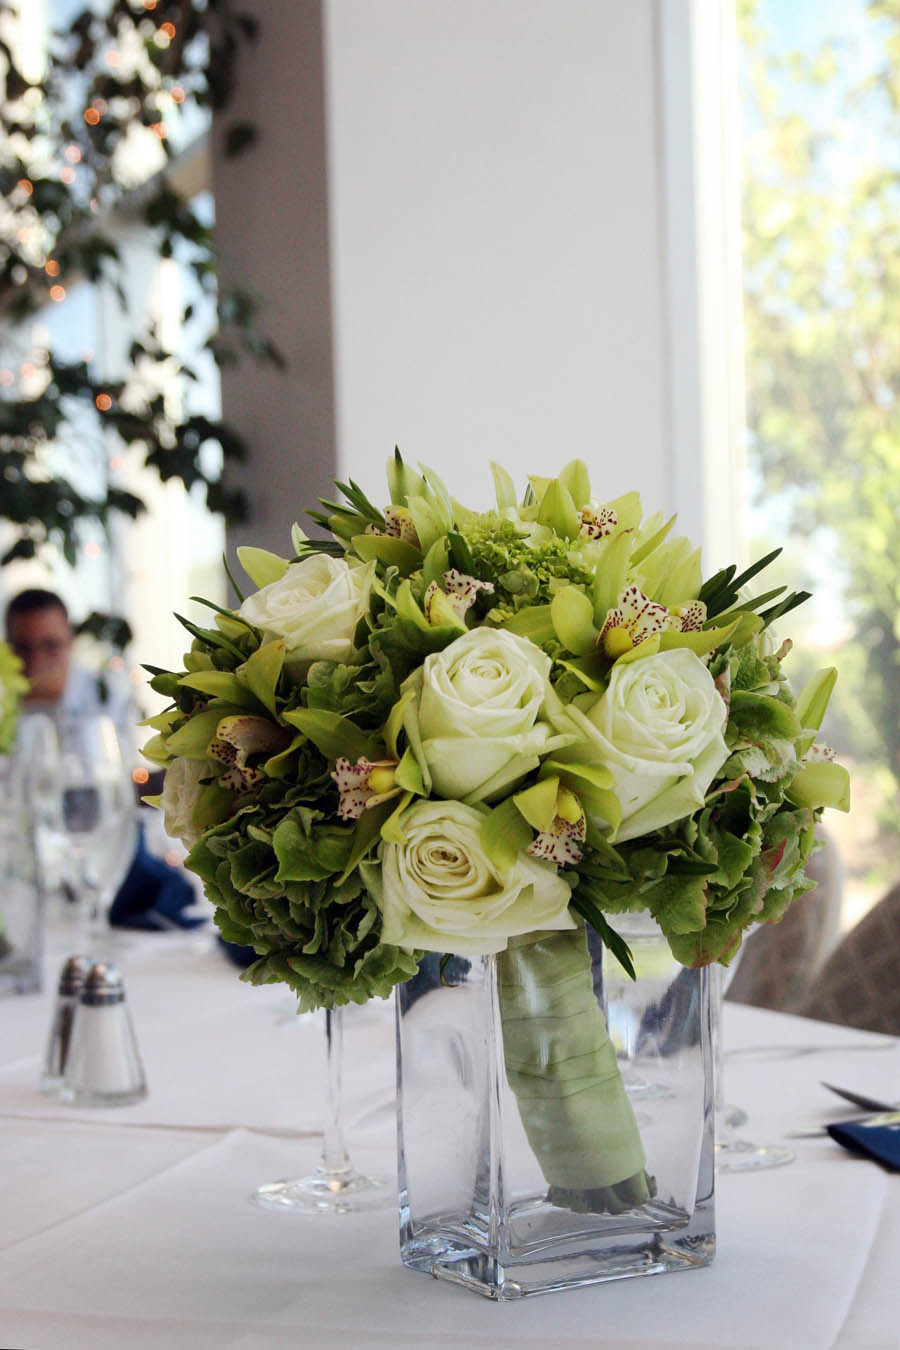 Bouquet%20in%20vase%20on%20table.full